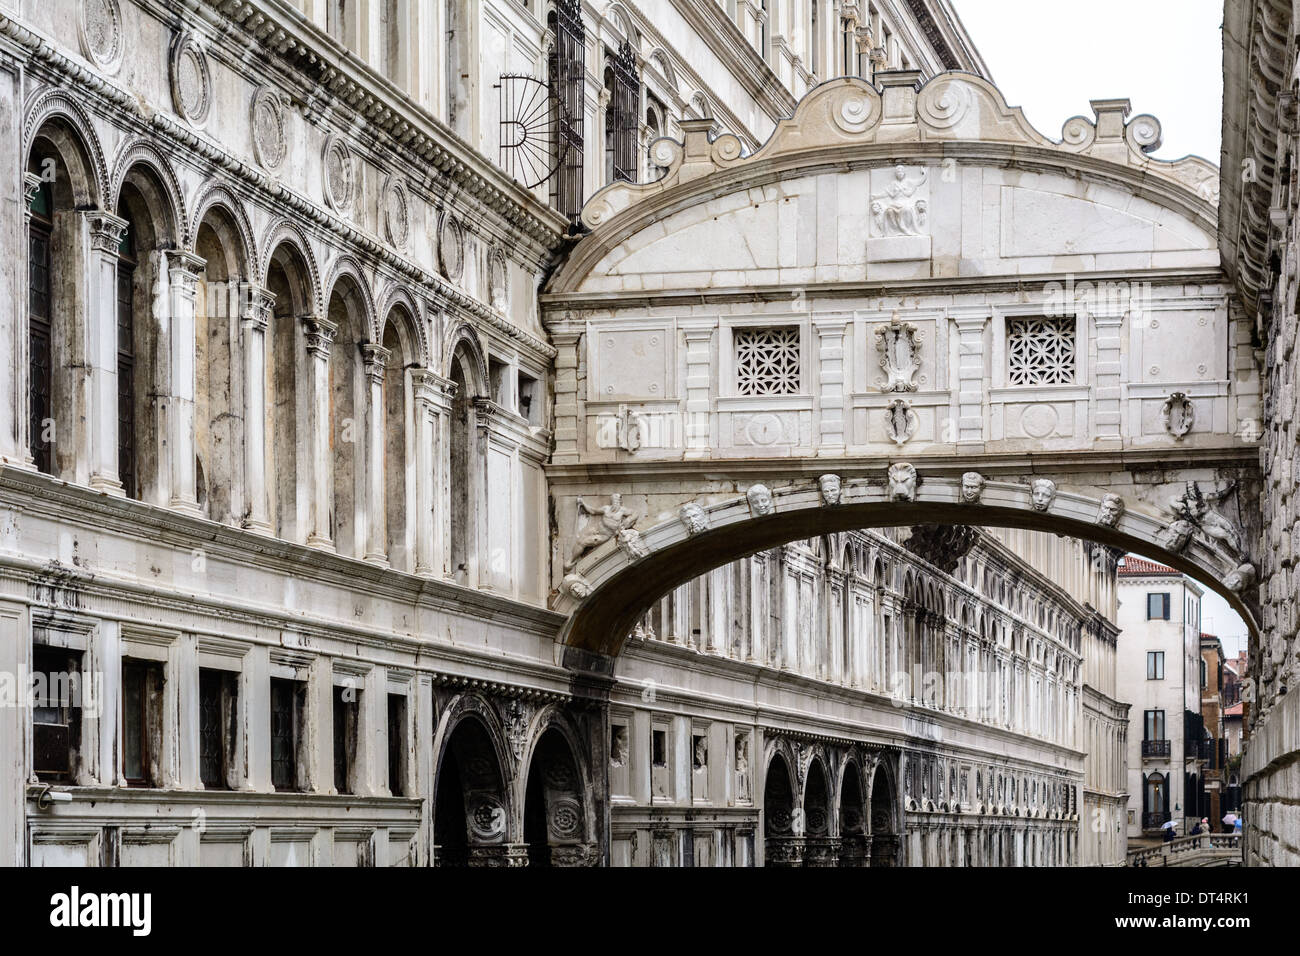 Venice, Italy. The Bridge of Sighs, Ponte dei Sospiri, over the Rio di Palazzo, connecting the Doge´s Palace with the New Prison. - Stock Image